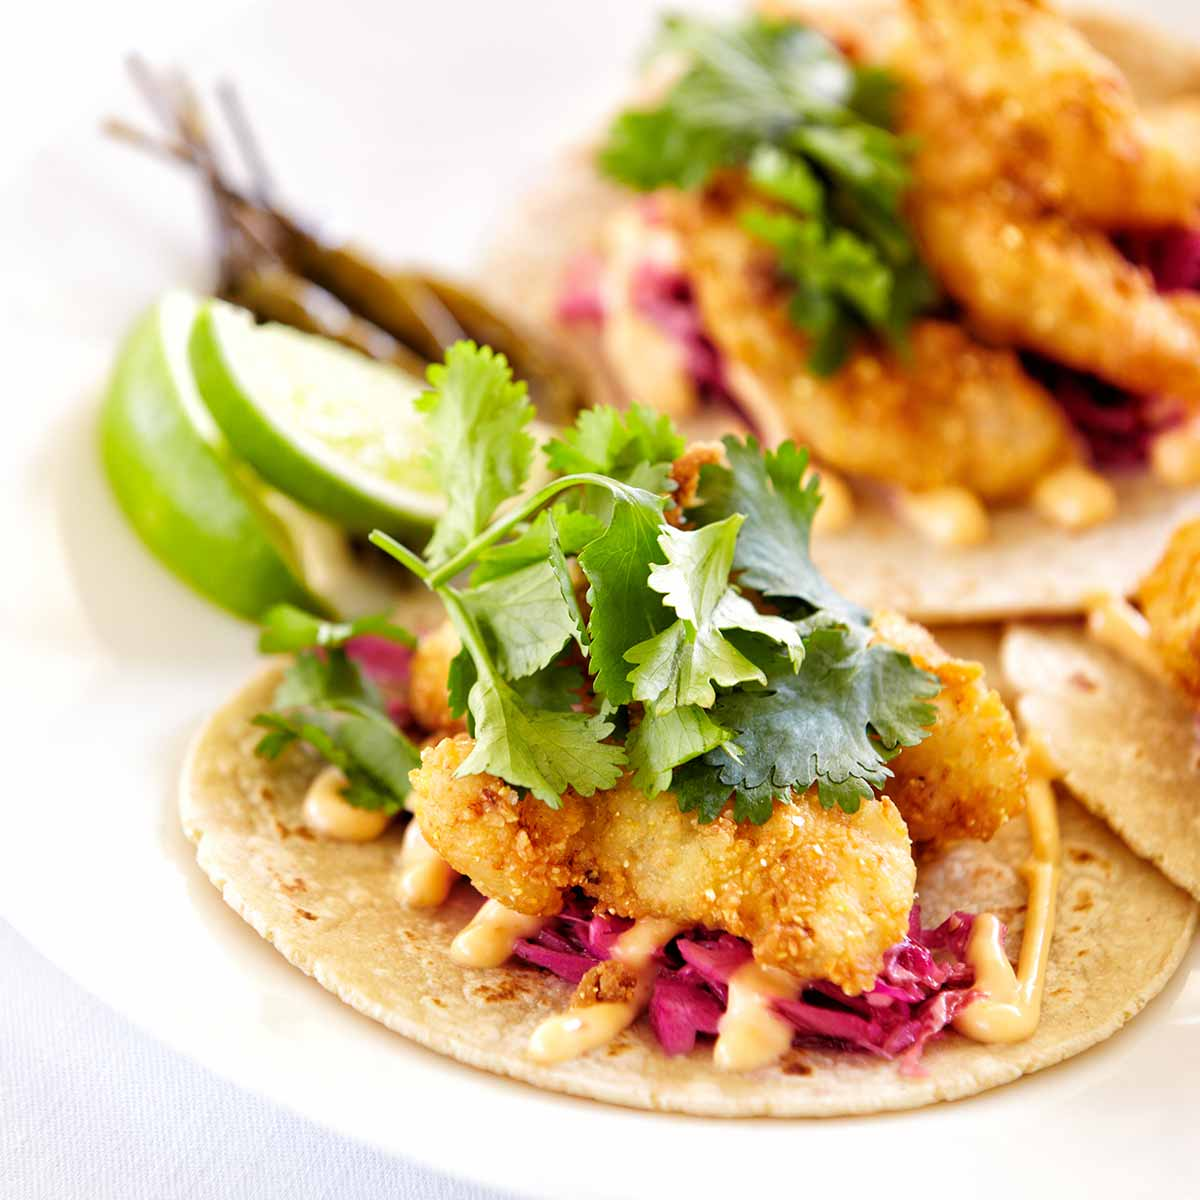 Fish taco image for dinner to go